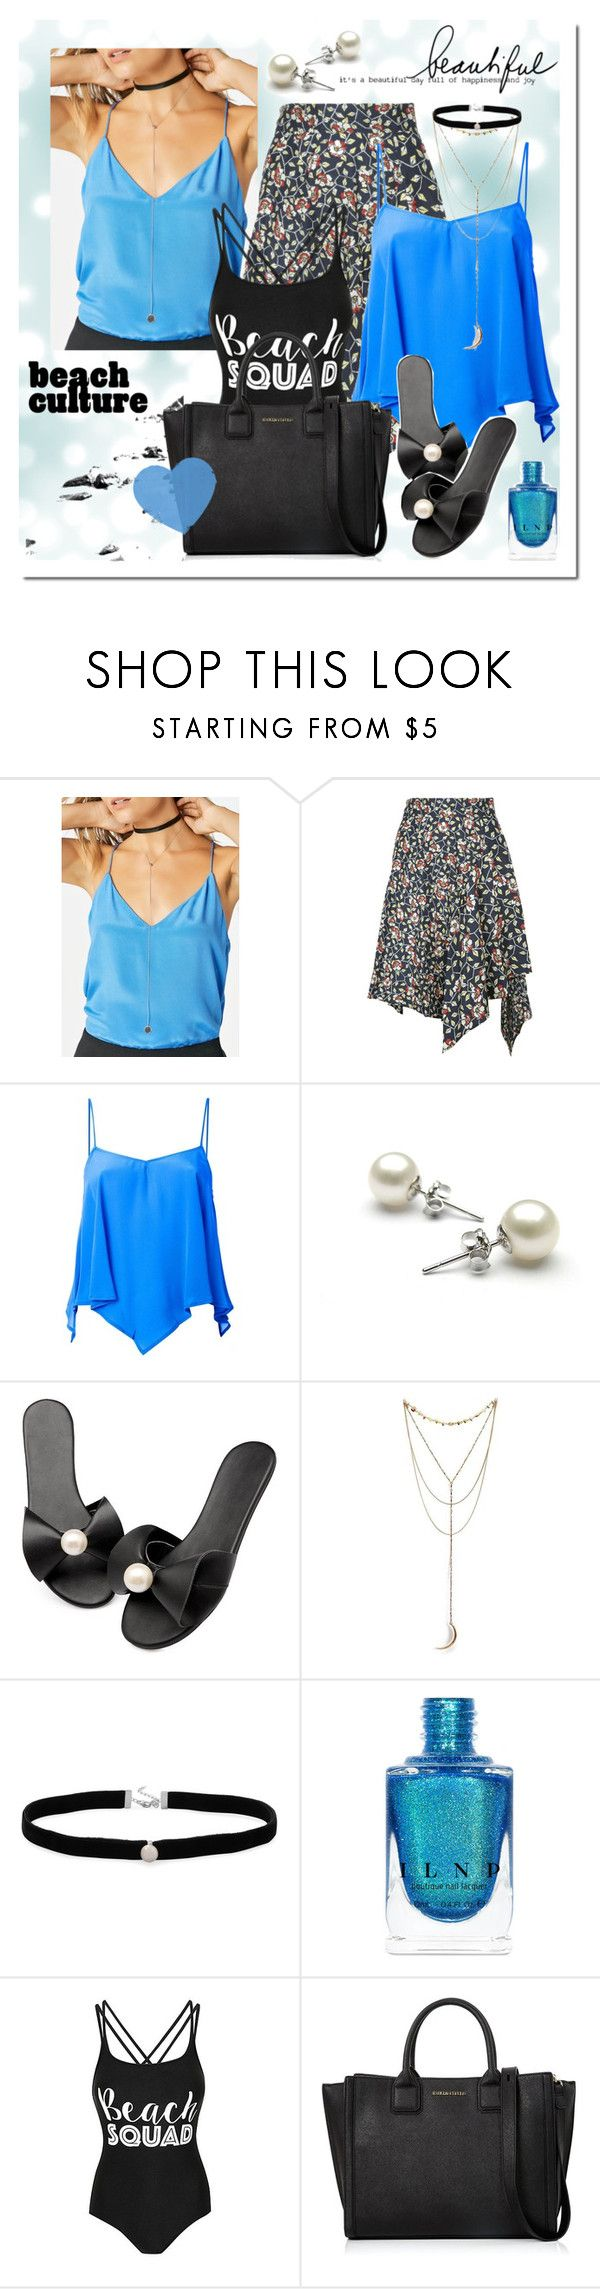 """""""""""Deep summer is when laziness finds respectability."""" - Sam Keen"""" by elena-777s ❤ liked on Polyvore featuring JustFab, Isabel Marant, Roberto Collina, Amanda Rose Collection, George, Karl Lagerfeld, beach, beachstyle, beachholiday and springsummer2017"""